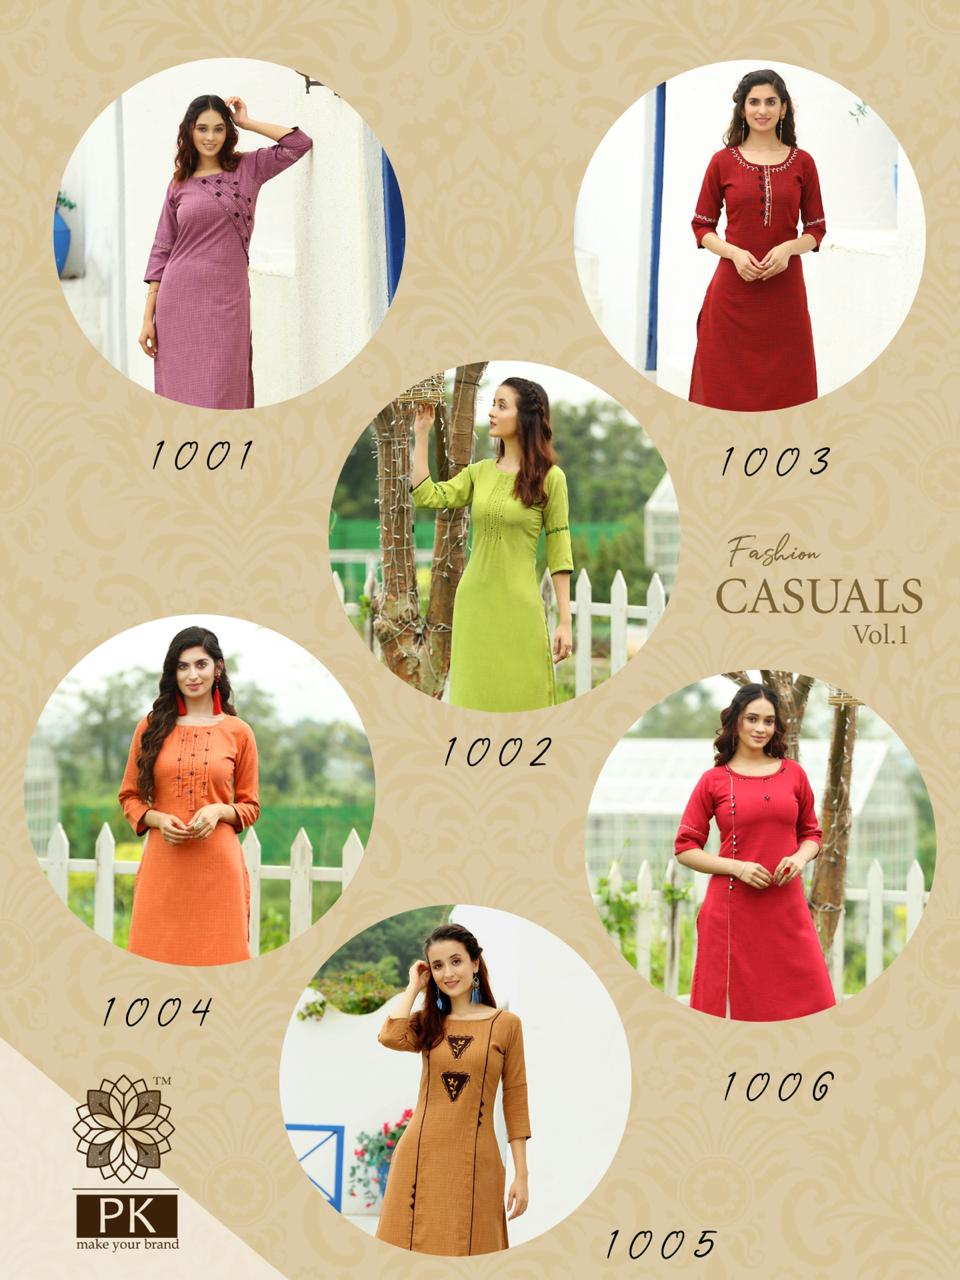 Pk Fashion Casuals Vol 1 Kurti Wholesale Catalog 6 Pcs 12 - Pk Fashion Casuals Vol 1 Kurti Wholesale Catalog 6 Pcs